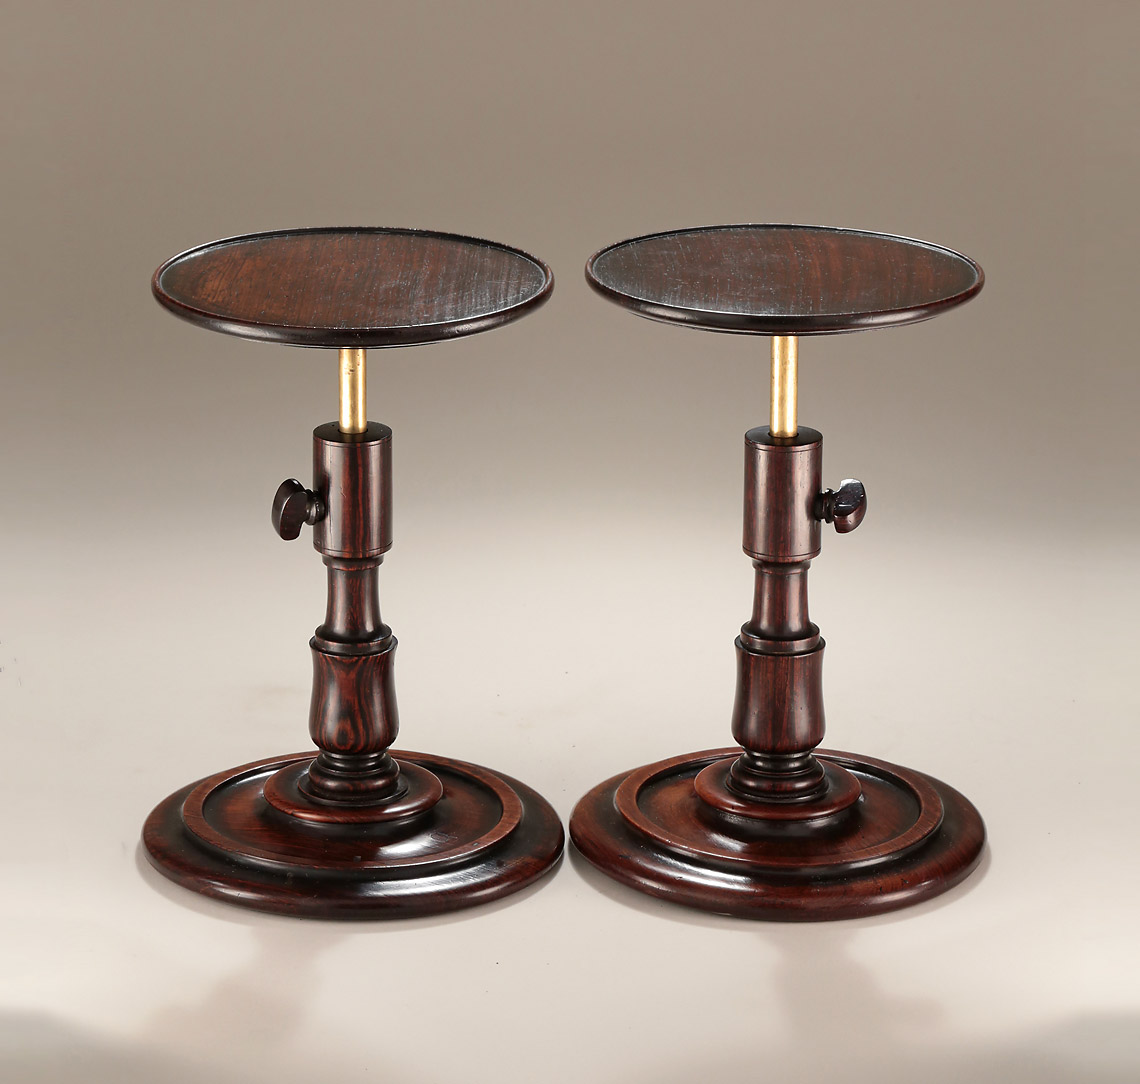 Rare Pair Georgian Turned Goncalo Alves Adjustable Candle-Stands